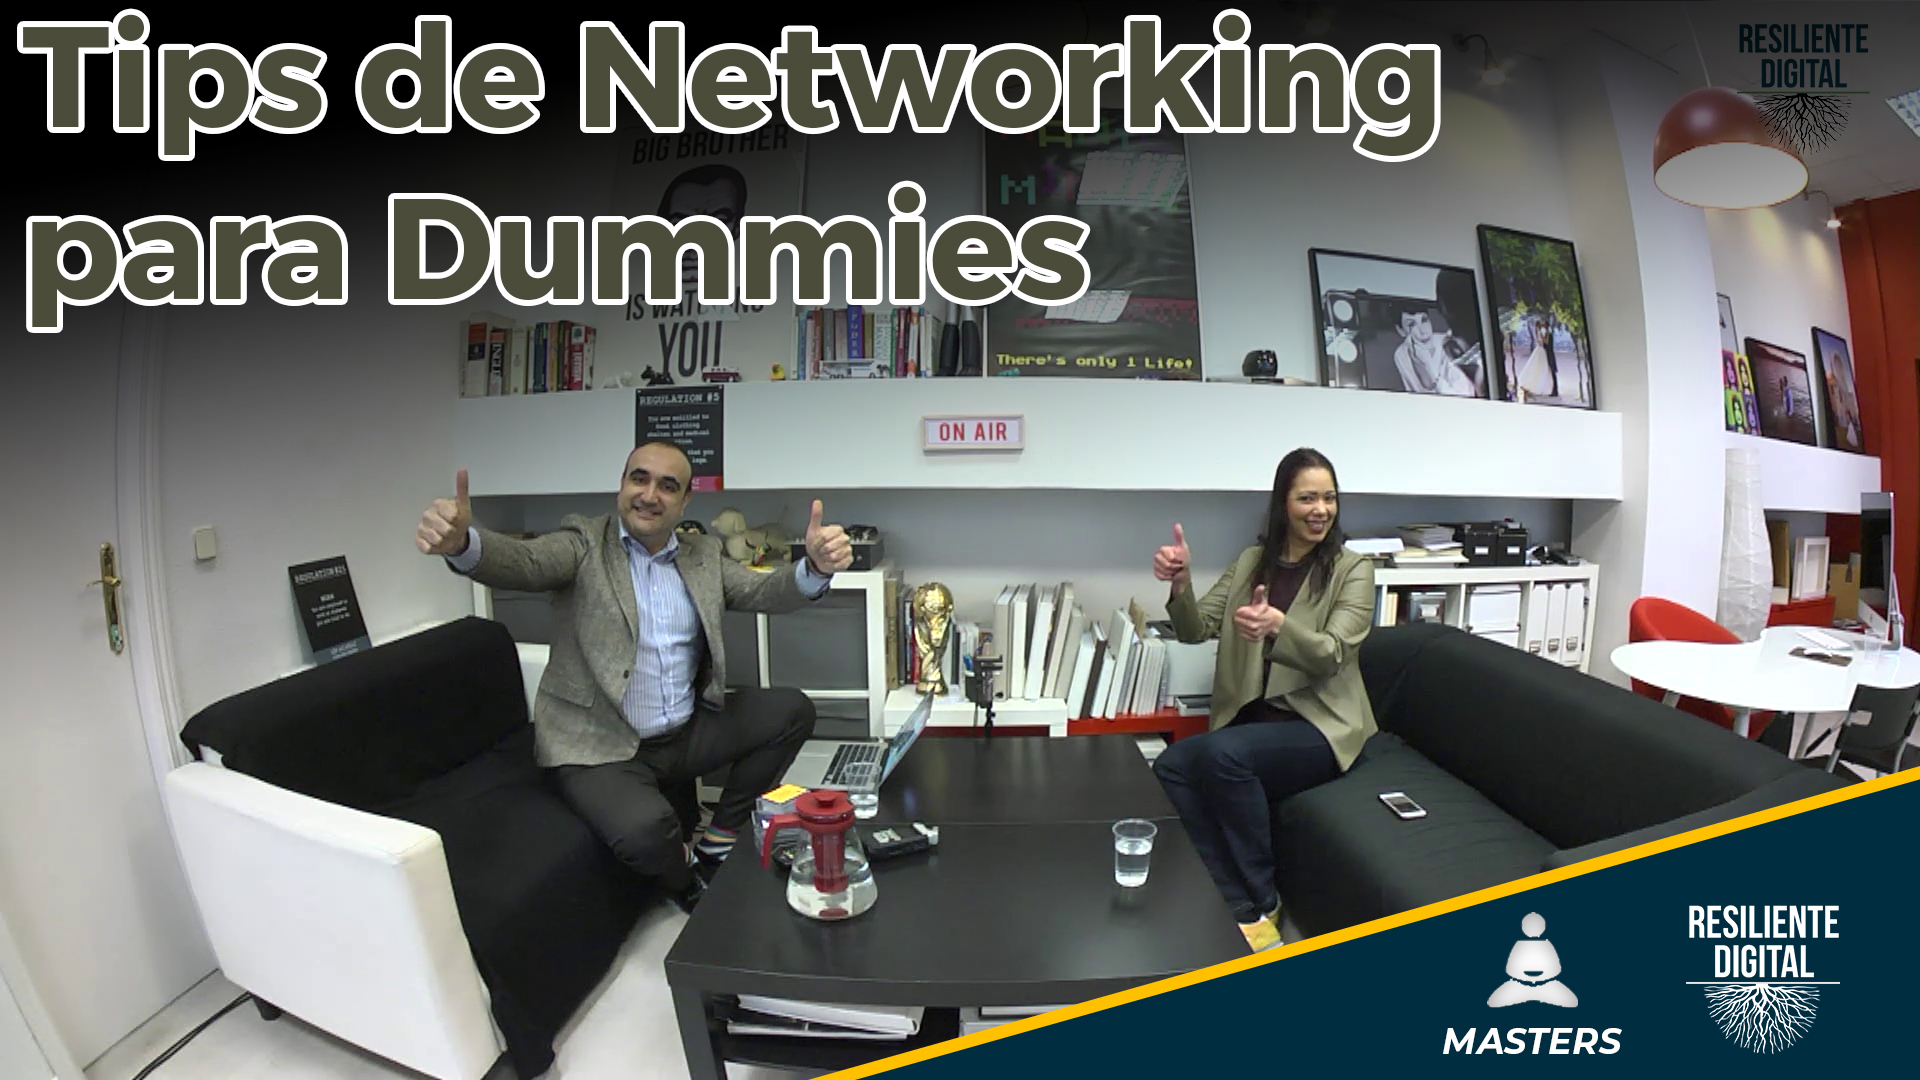 Tips de Networking para Dummies